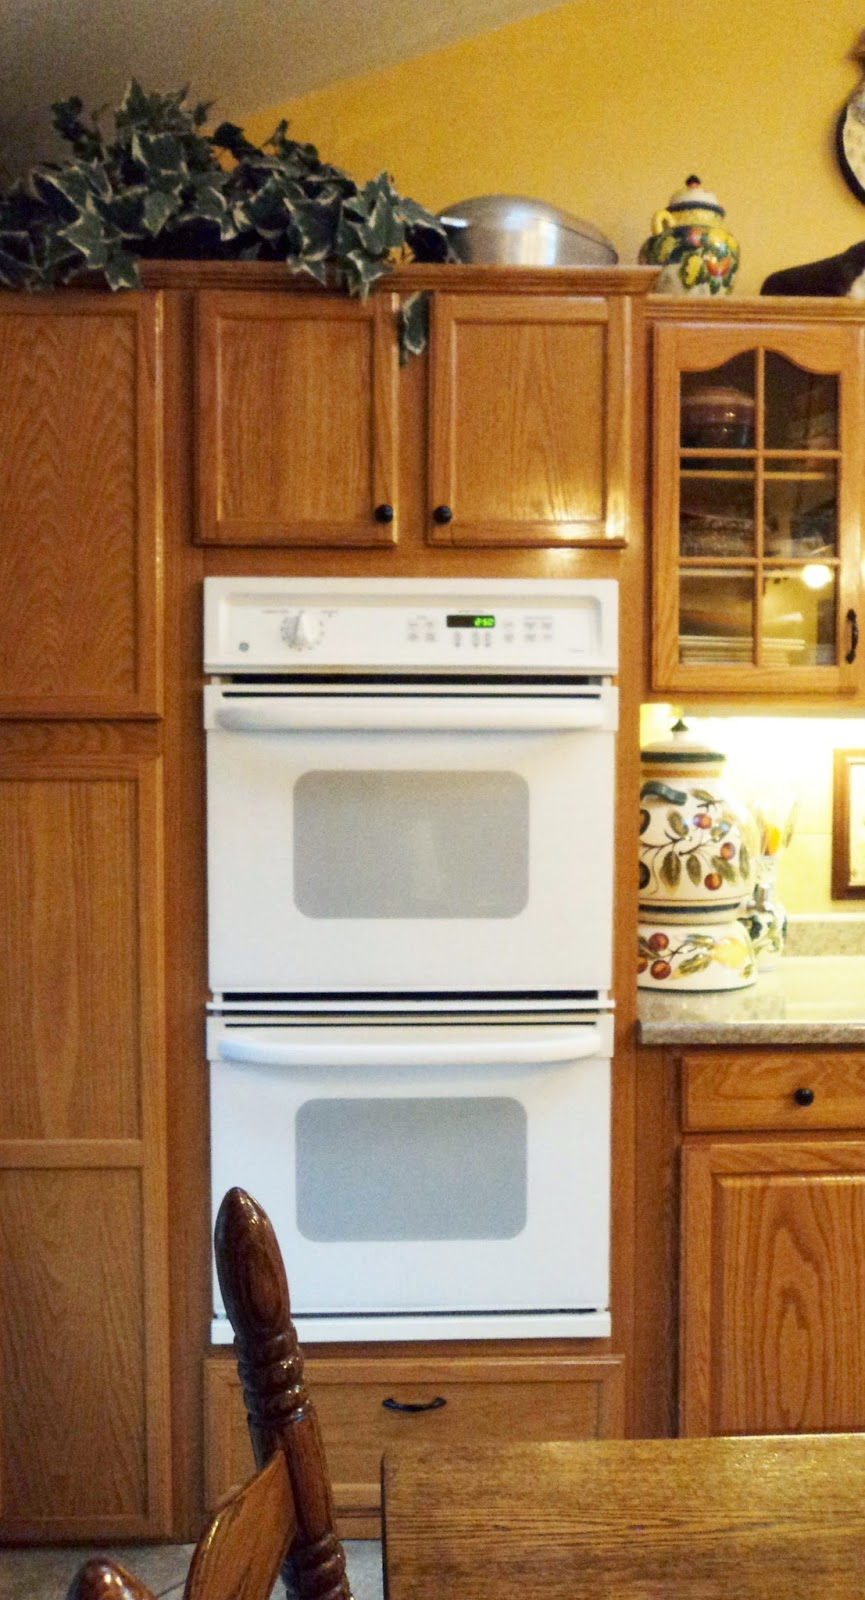 Damaged Kitchen Cabinets Craigslist -  haha matching is not something that works here so i searched for one without luck craigslist was pretty much sold out of those